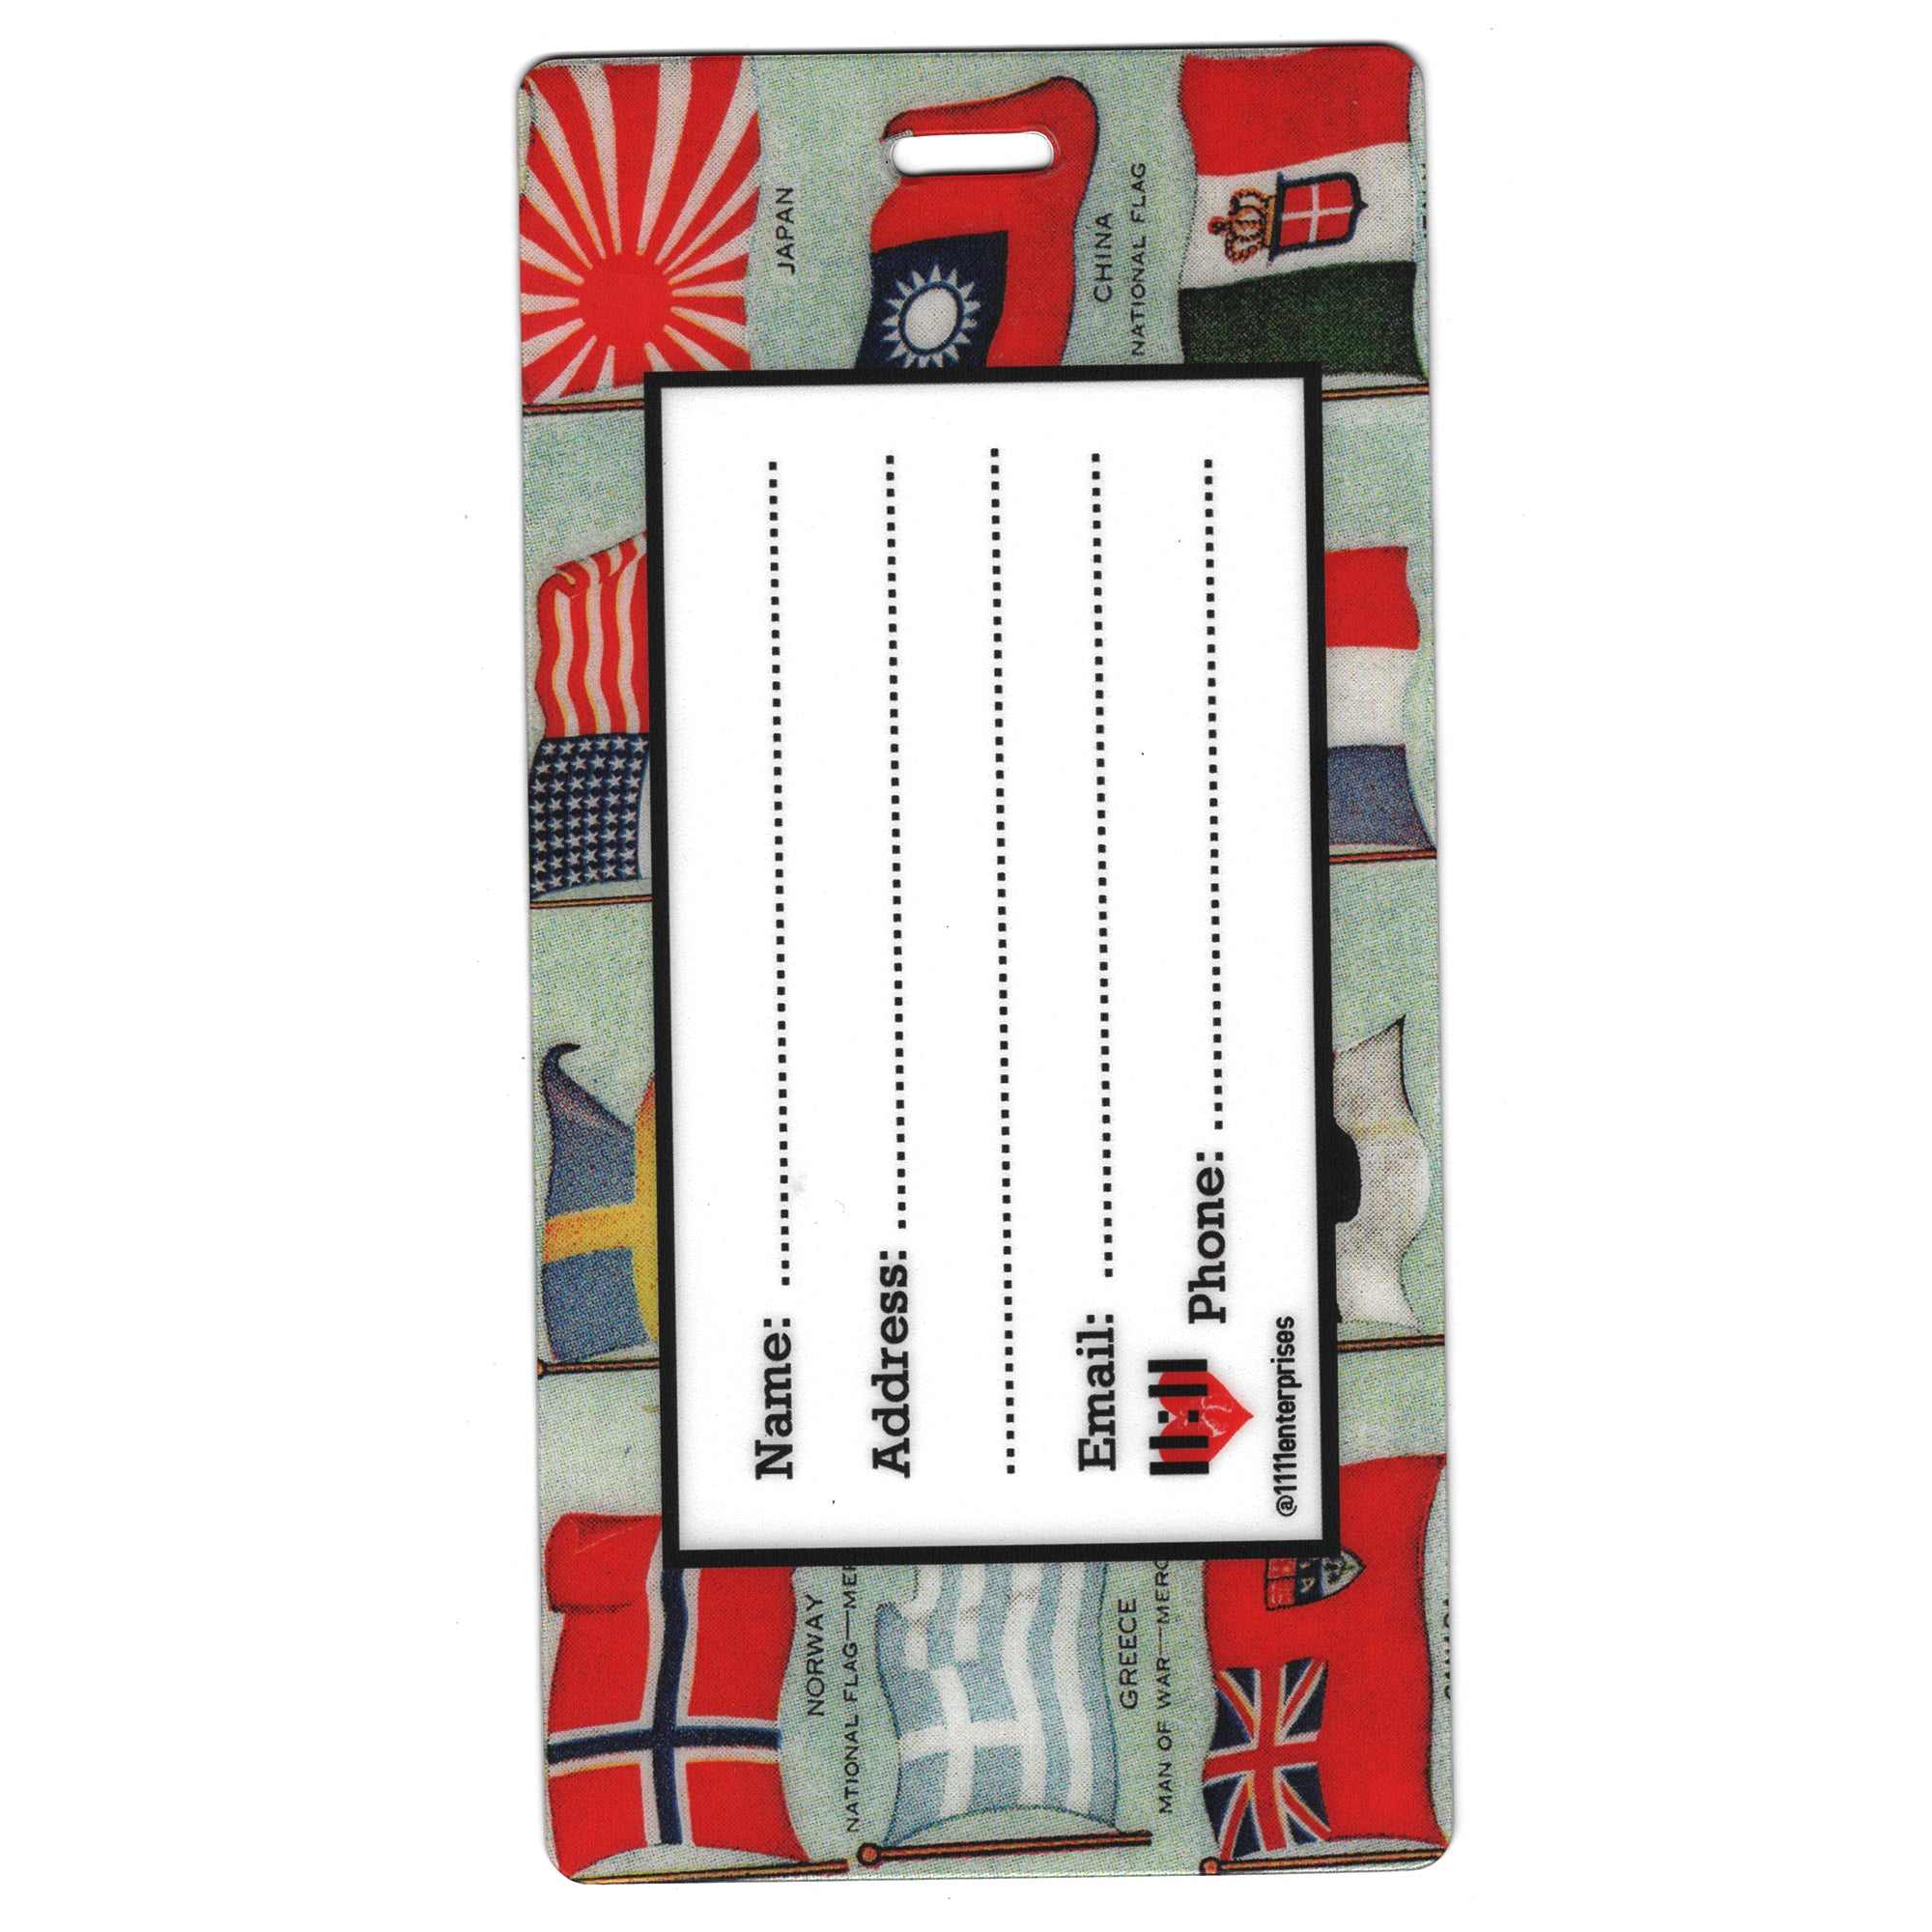 Flags of the World Luggage Bag Tag Set - 2 pc, Large by 11:11 Enterprises